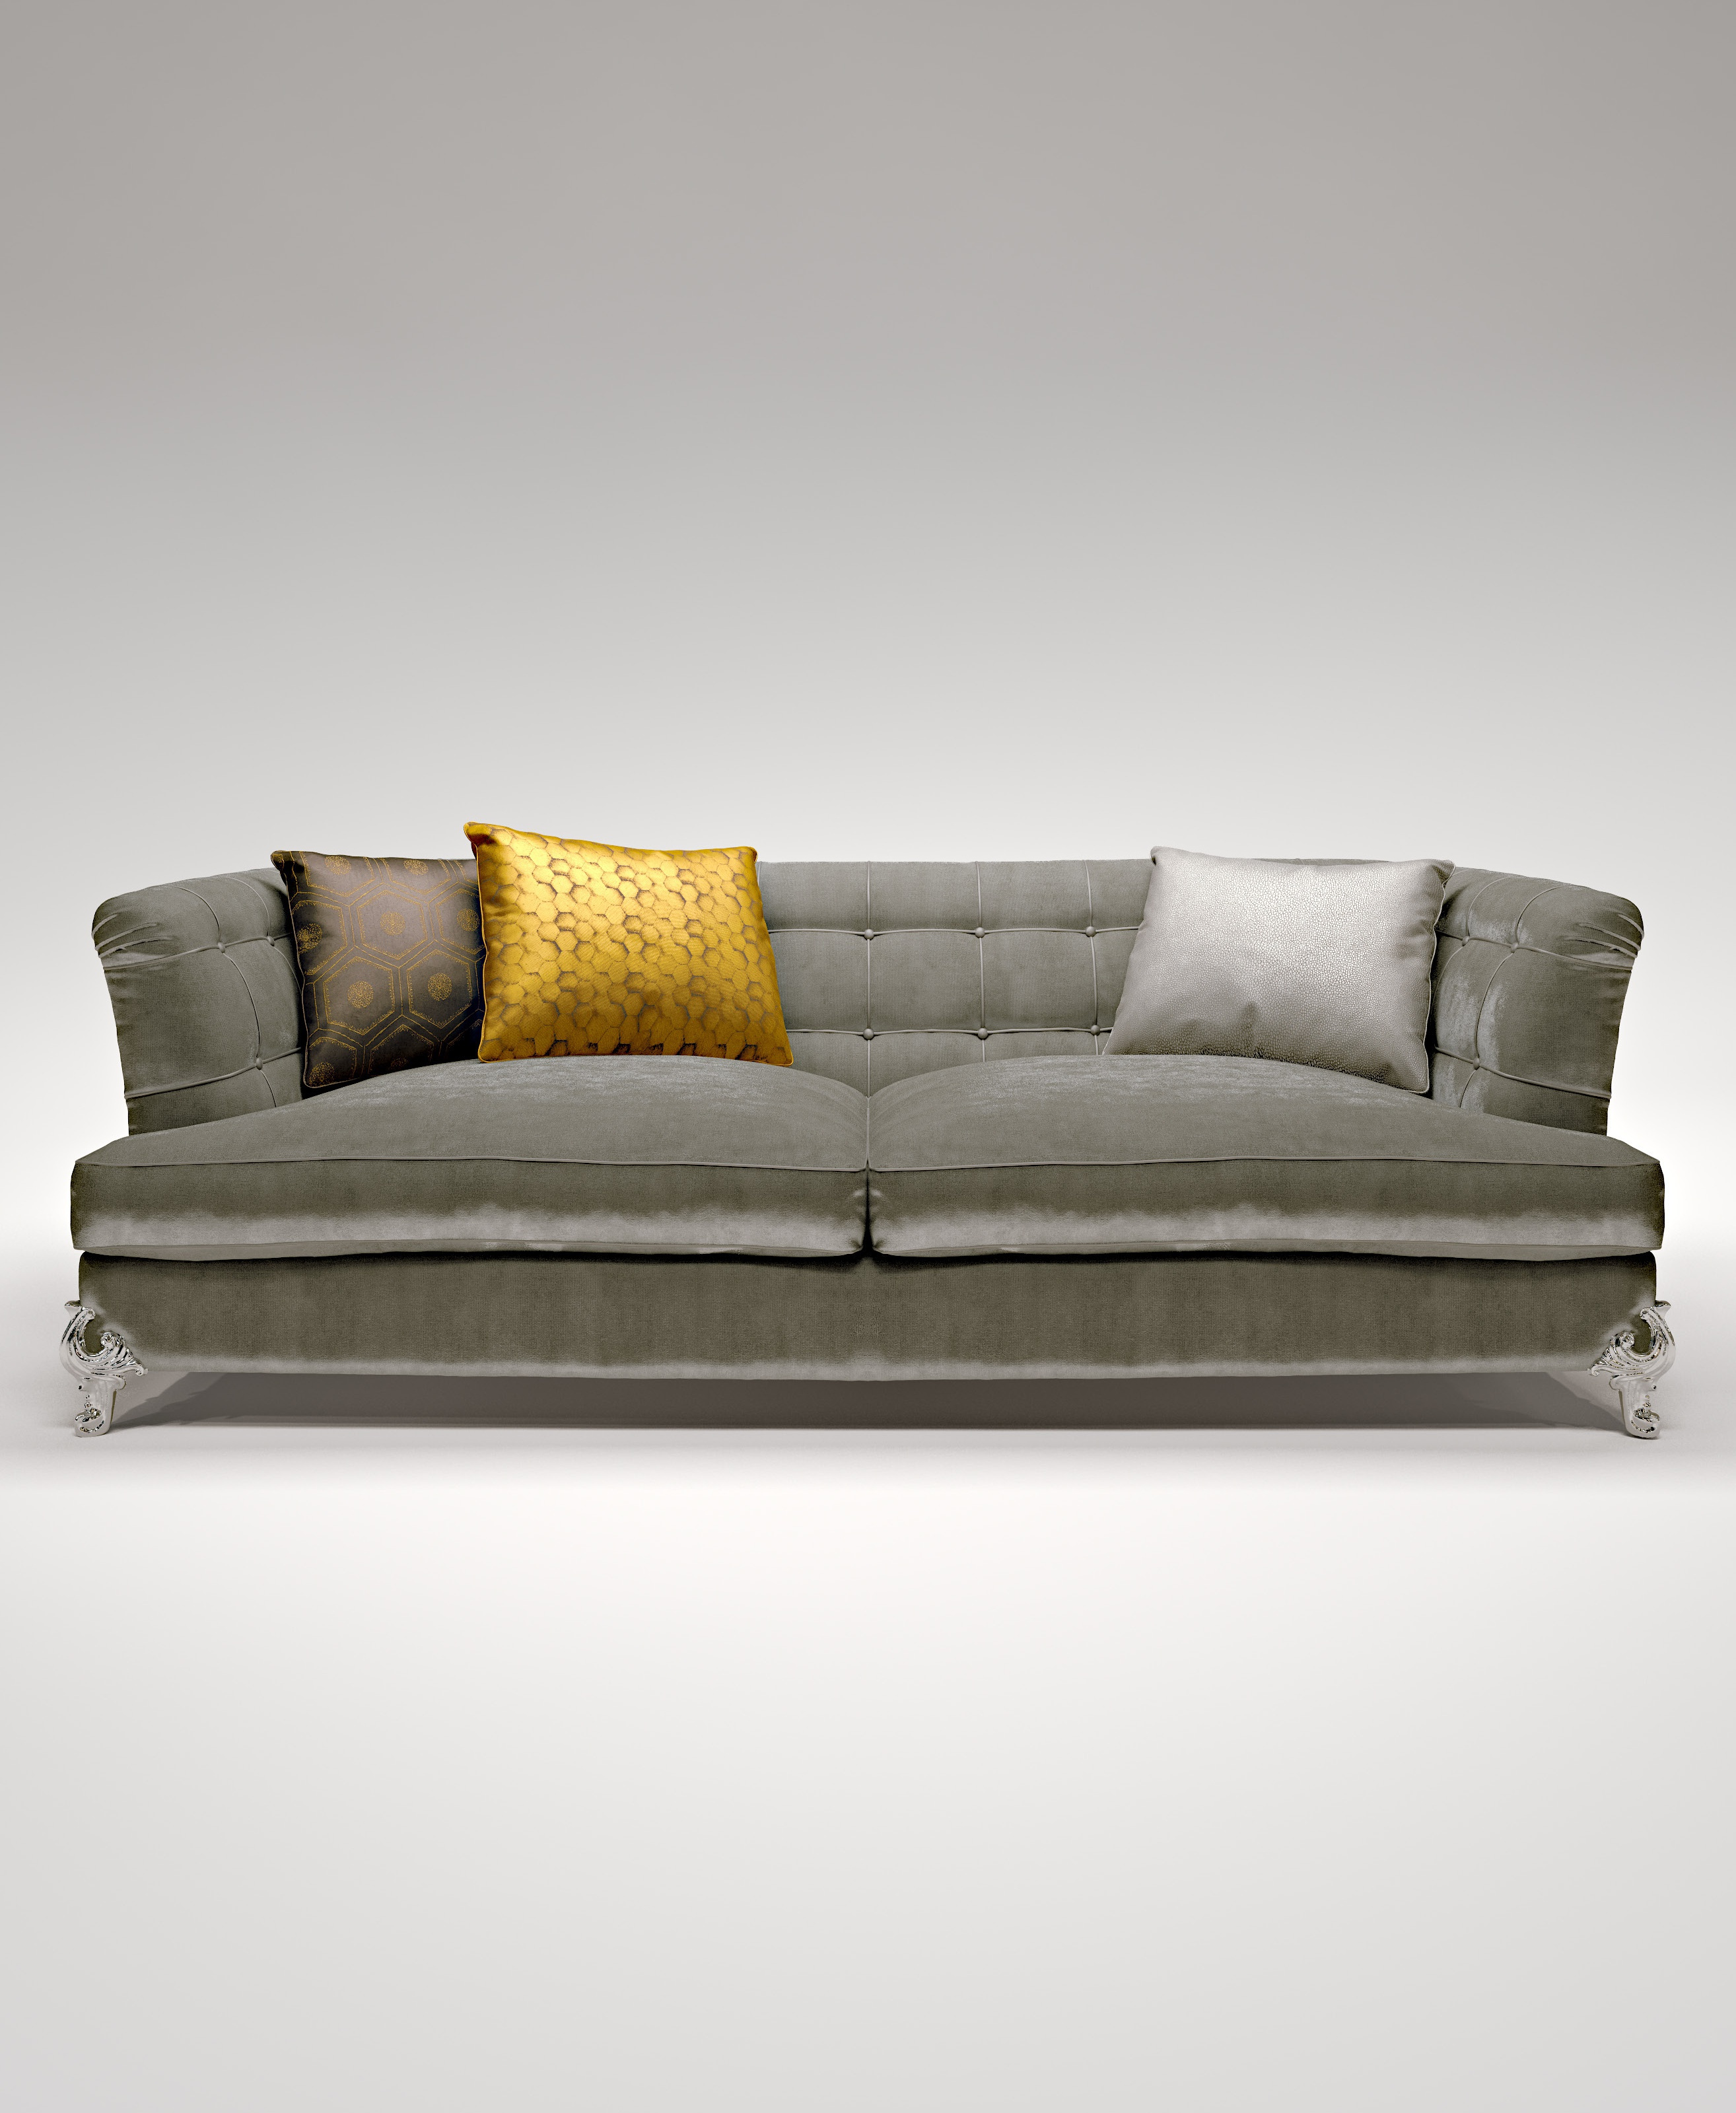 Double King sofa frame made of solid wood Bruno Zampa Luxury